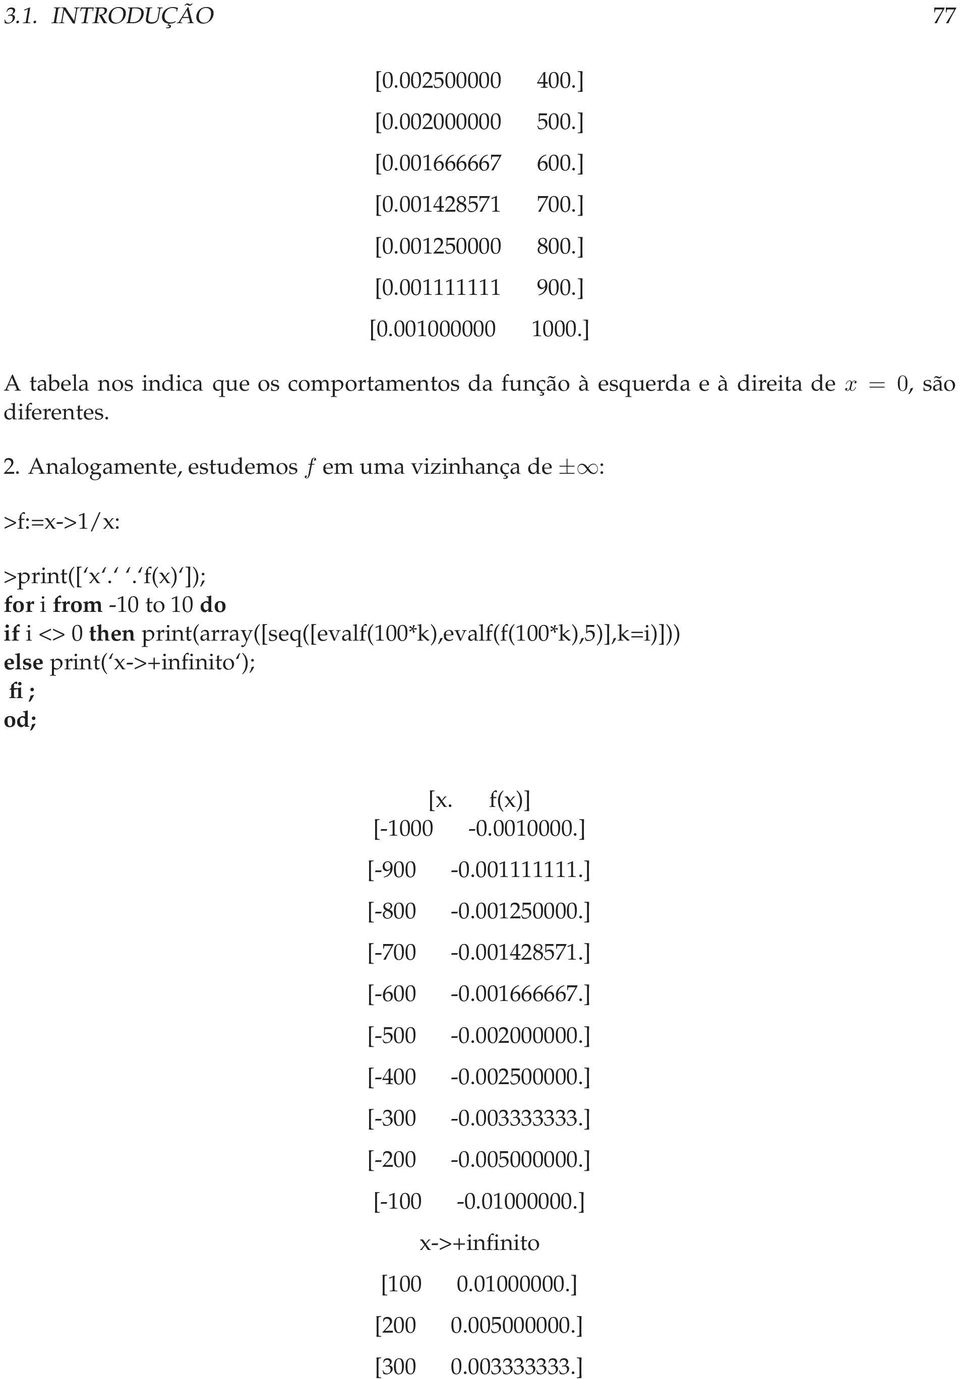 . f() ]); forifrom-10 to10 do if i <> 0 then print(array([seq([evalf(100*k),evalf(f(100*k),5)],k=i)])) else print( ->+infinito ); fi; od; [. f()] [-1000-0.0010000.] [-900-0.001111111.